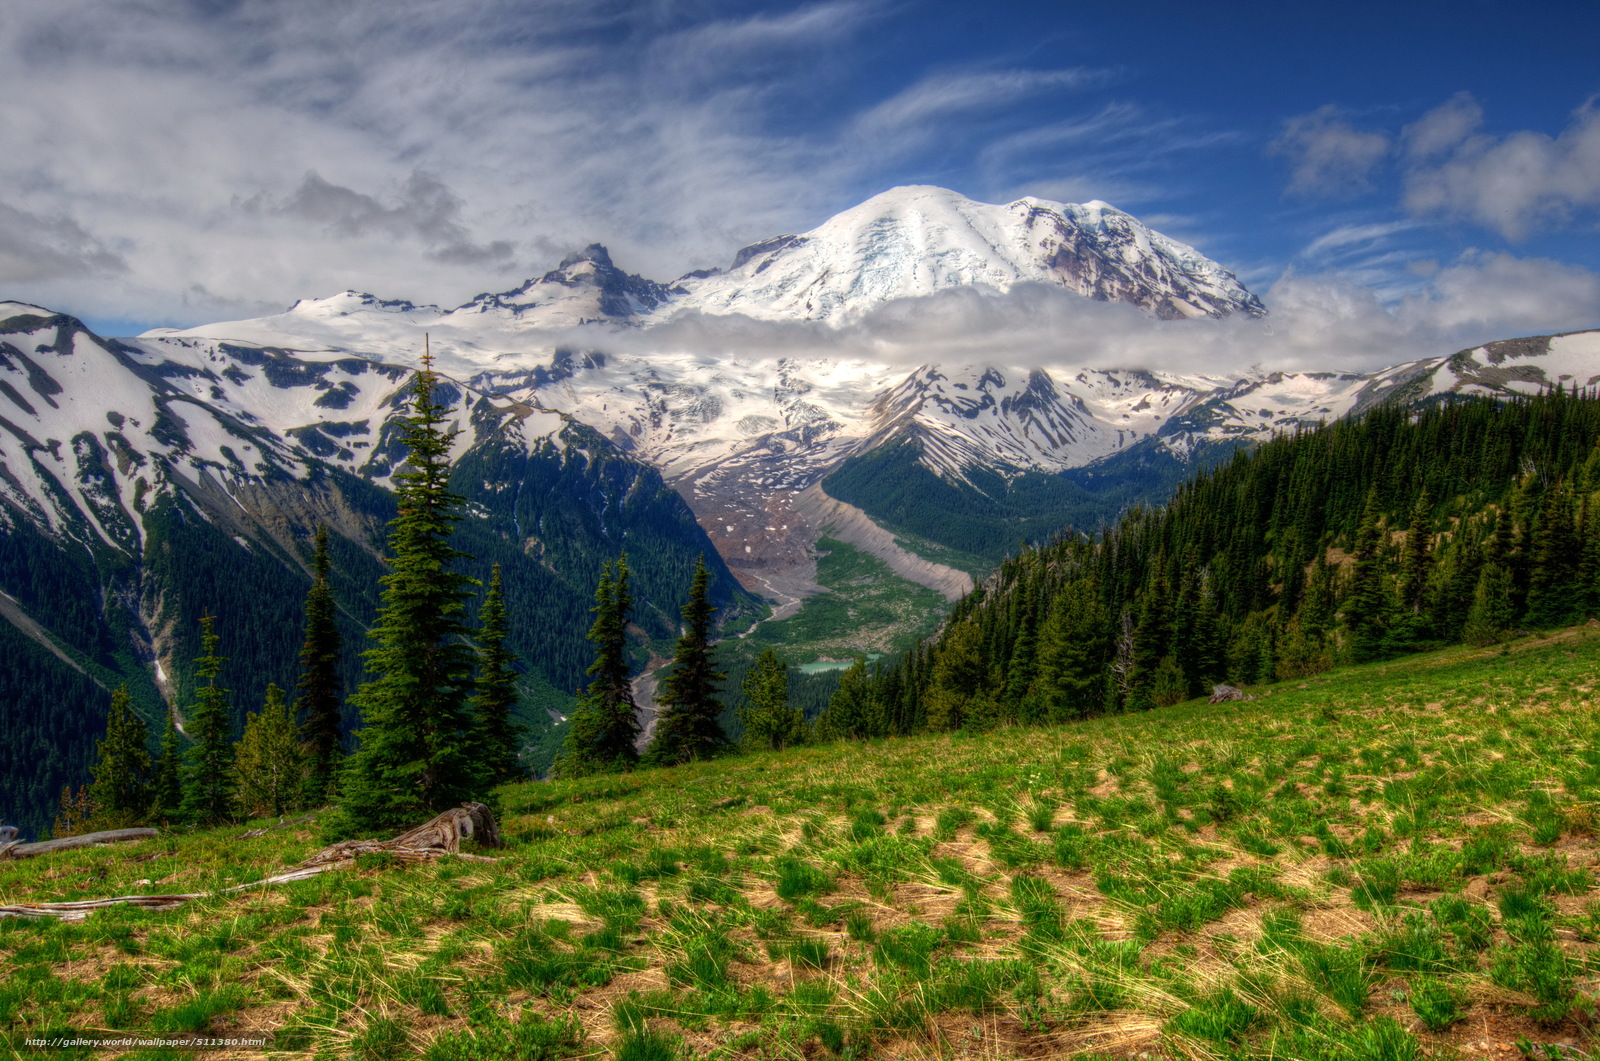 Download wallpaper Mountains landscape mt rainier Washington 1600x1061